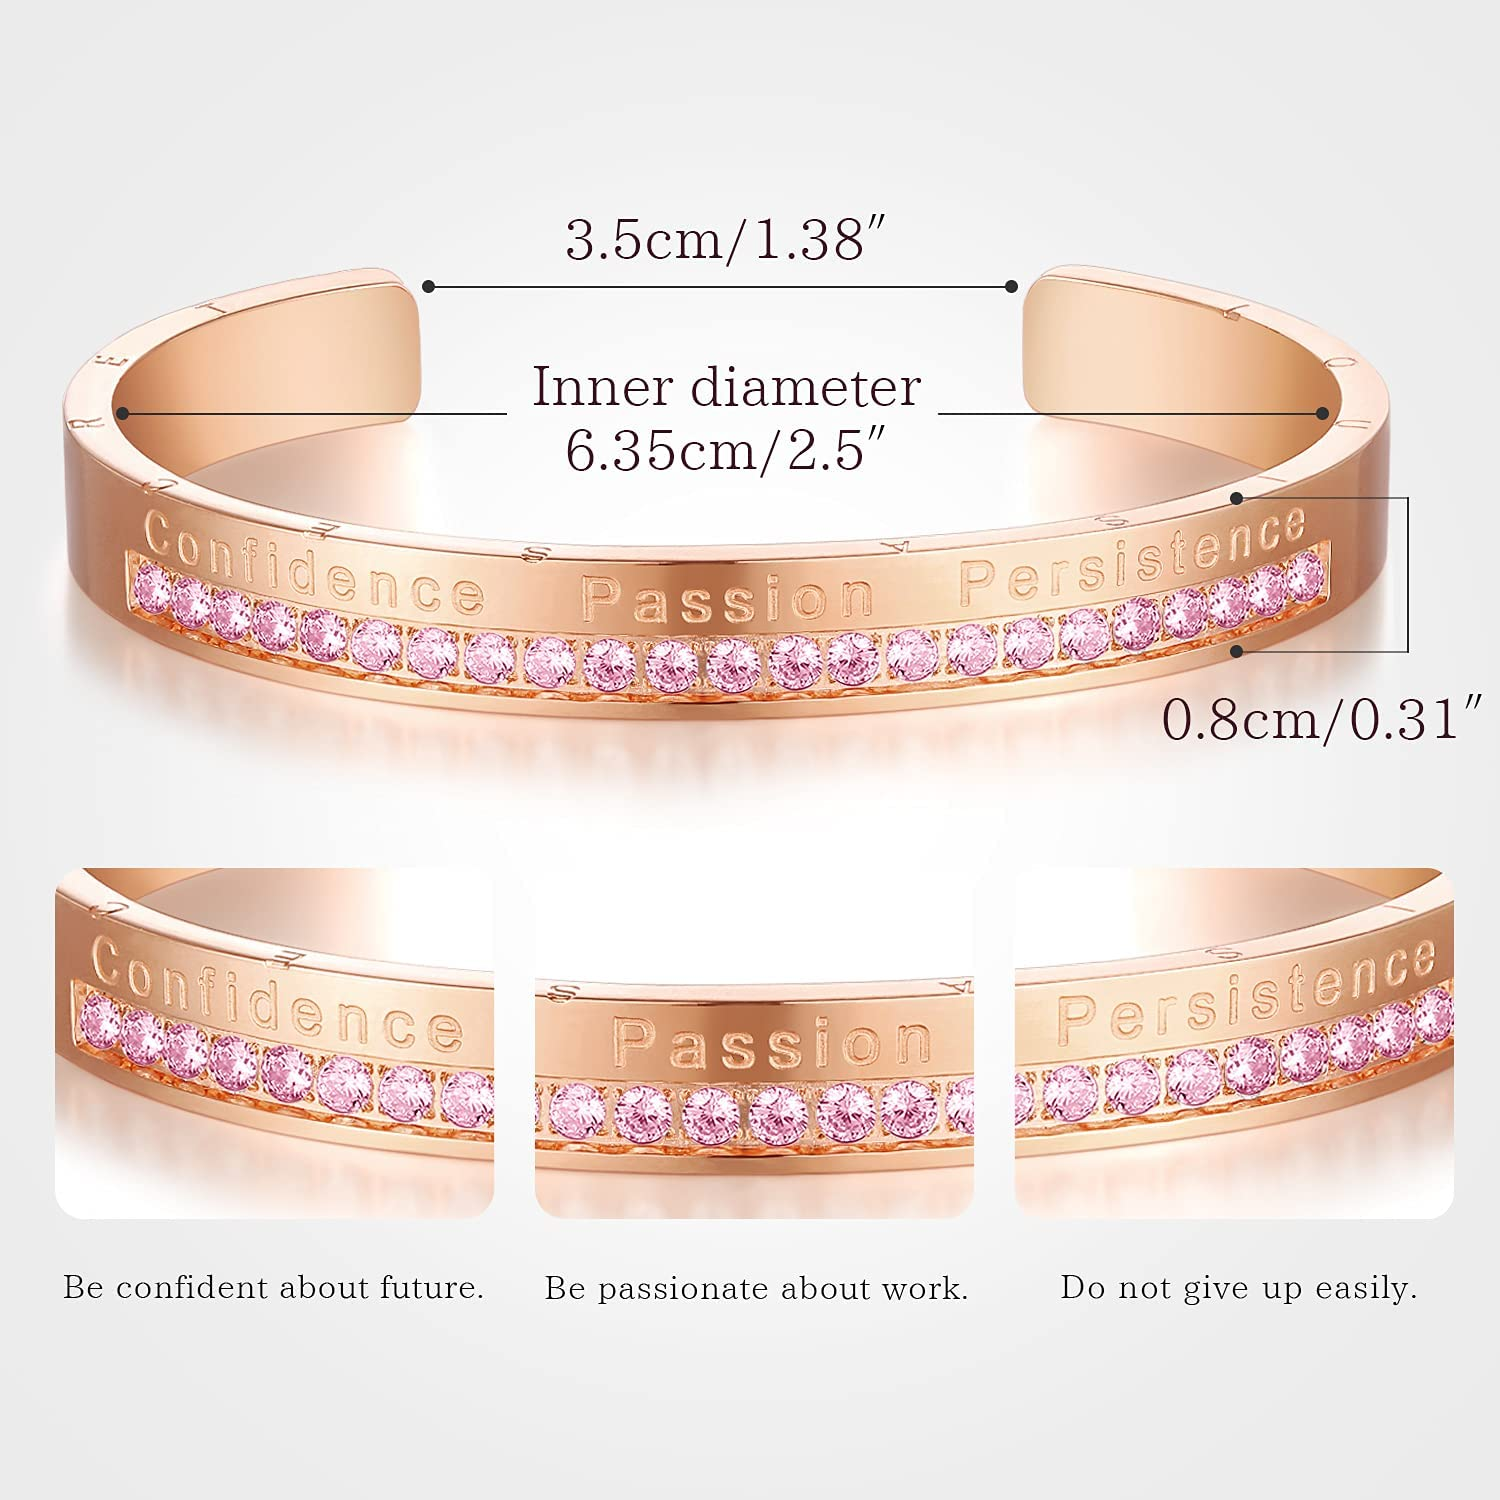 Inspirational Jewelry Gifts for Women Mom Cuff Bangle Bracelets Engraved Birthstone Graduation Birthday Gift for Her Sister Daughter Friends